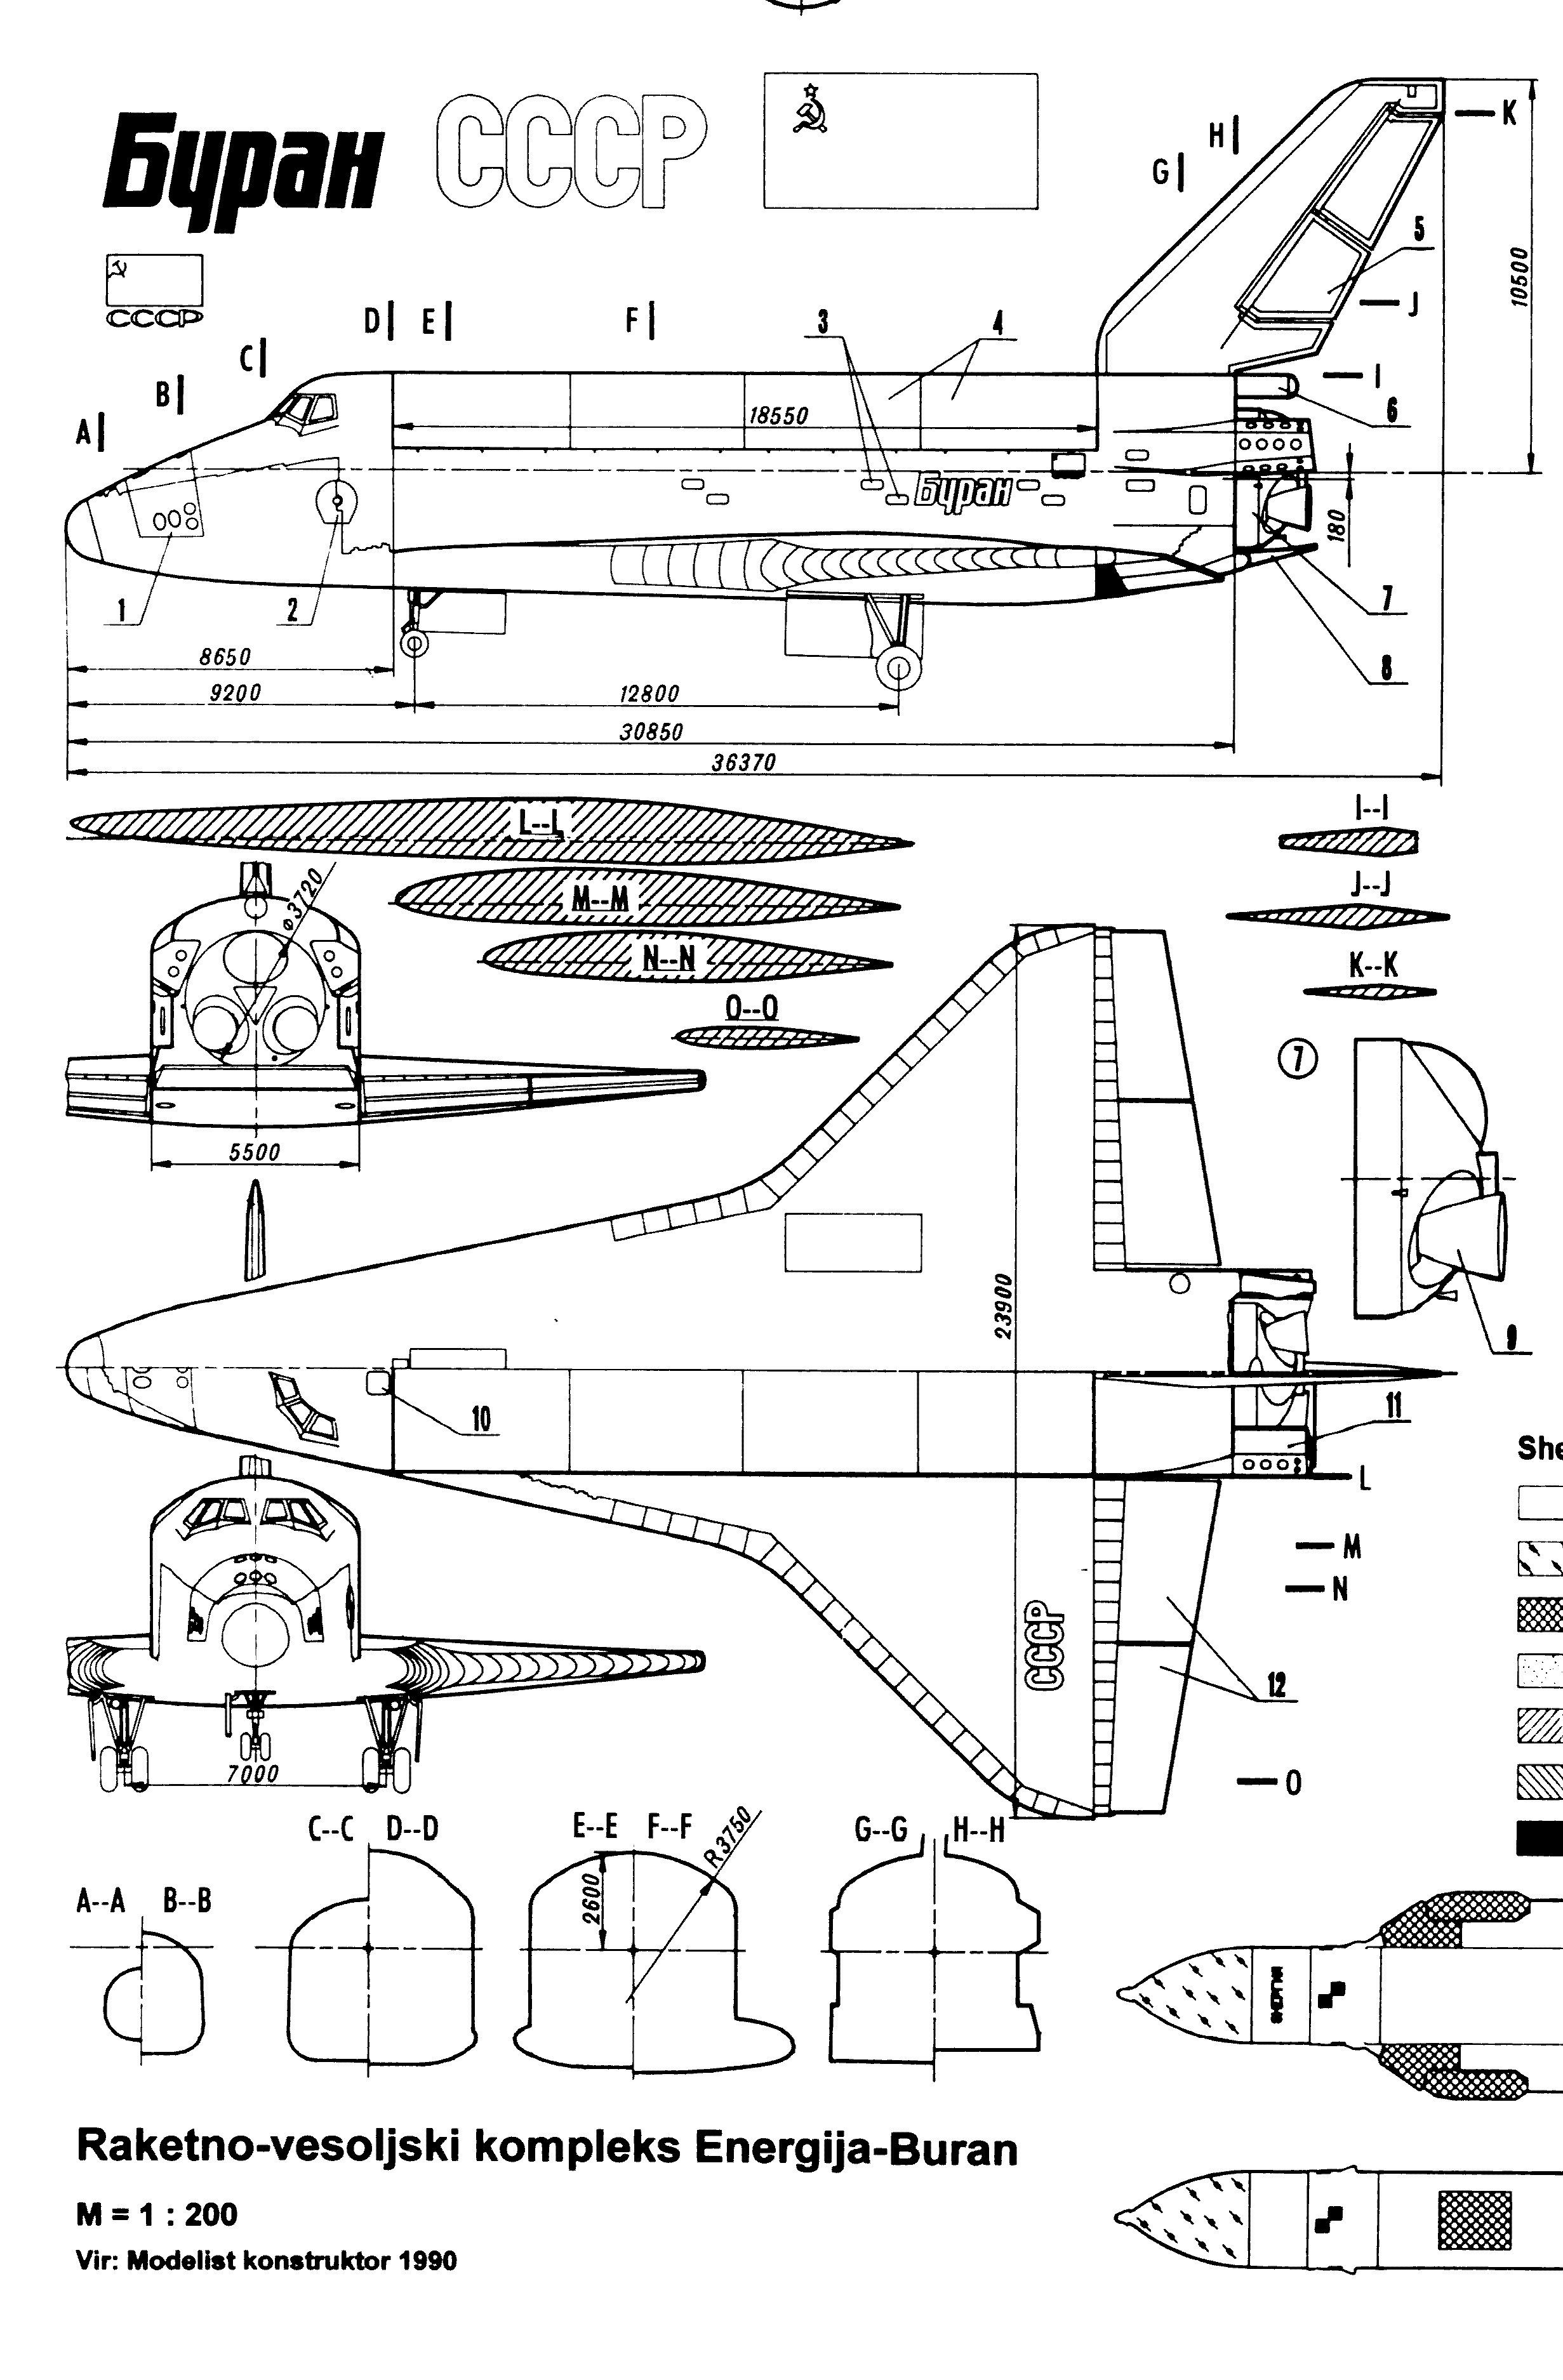 hight resolution of click for view big size 2462x3750 drawing narrative new space space shuttle nose cone diagram page 2 pics about space